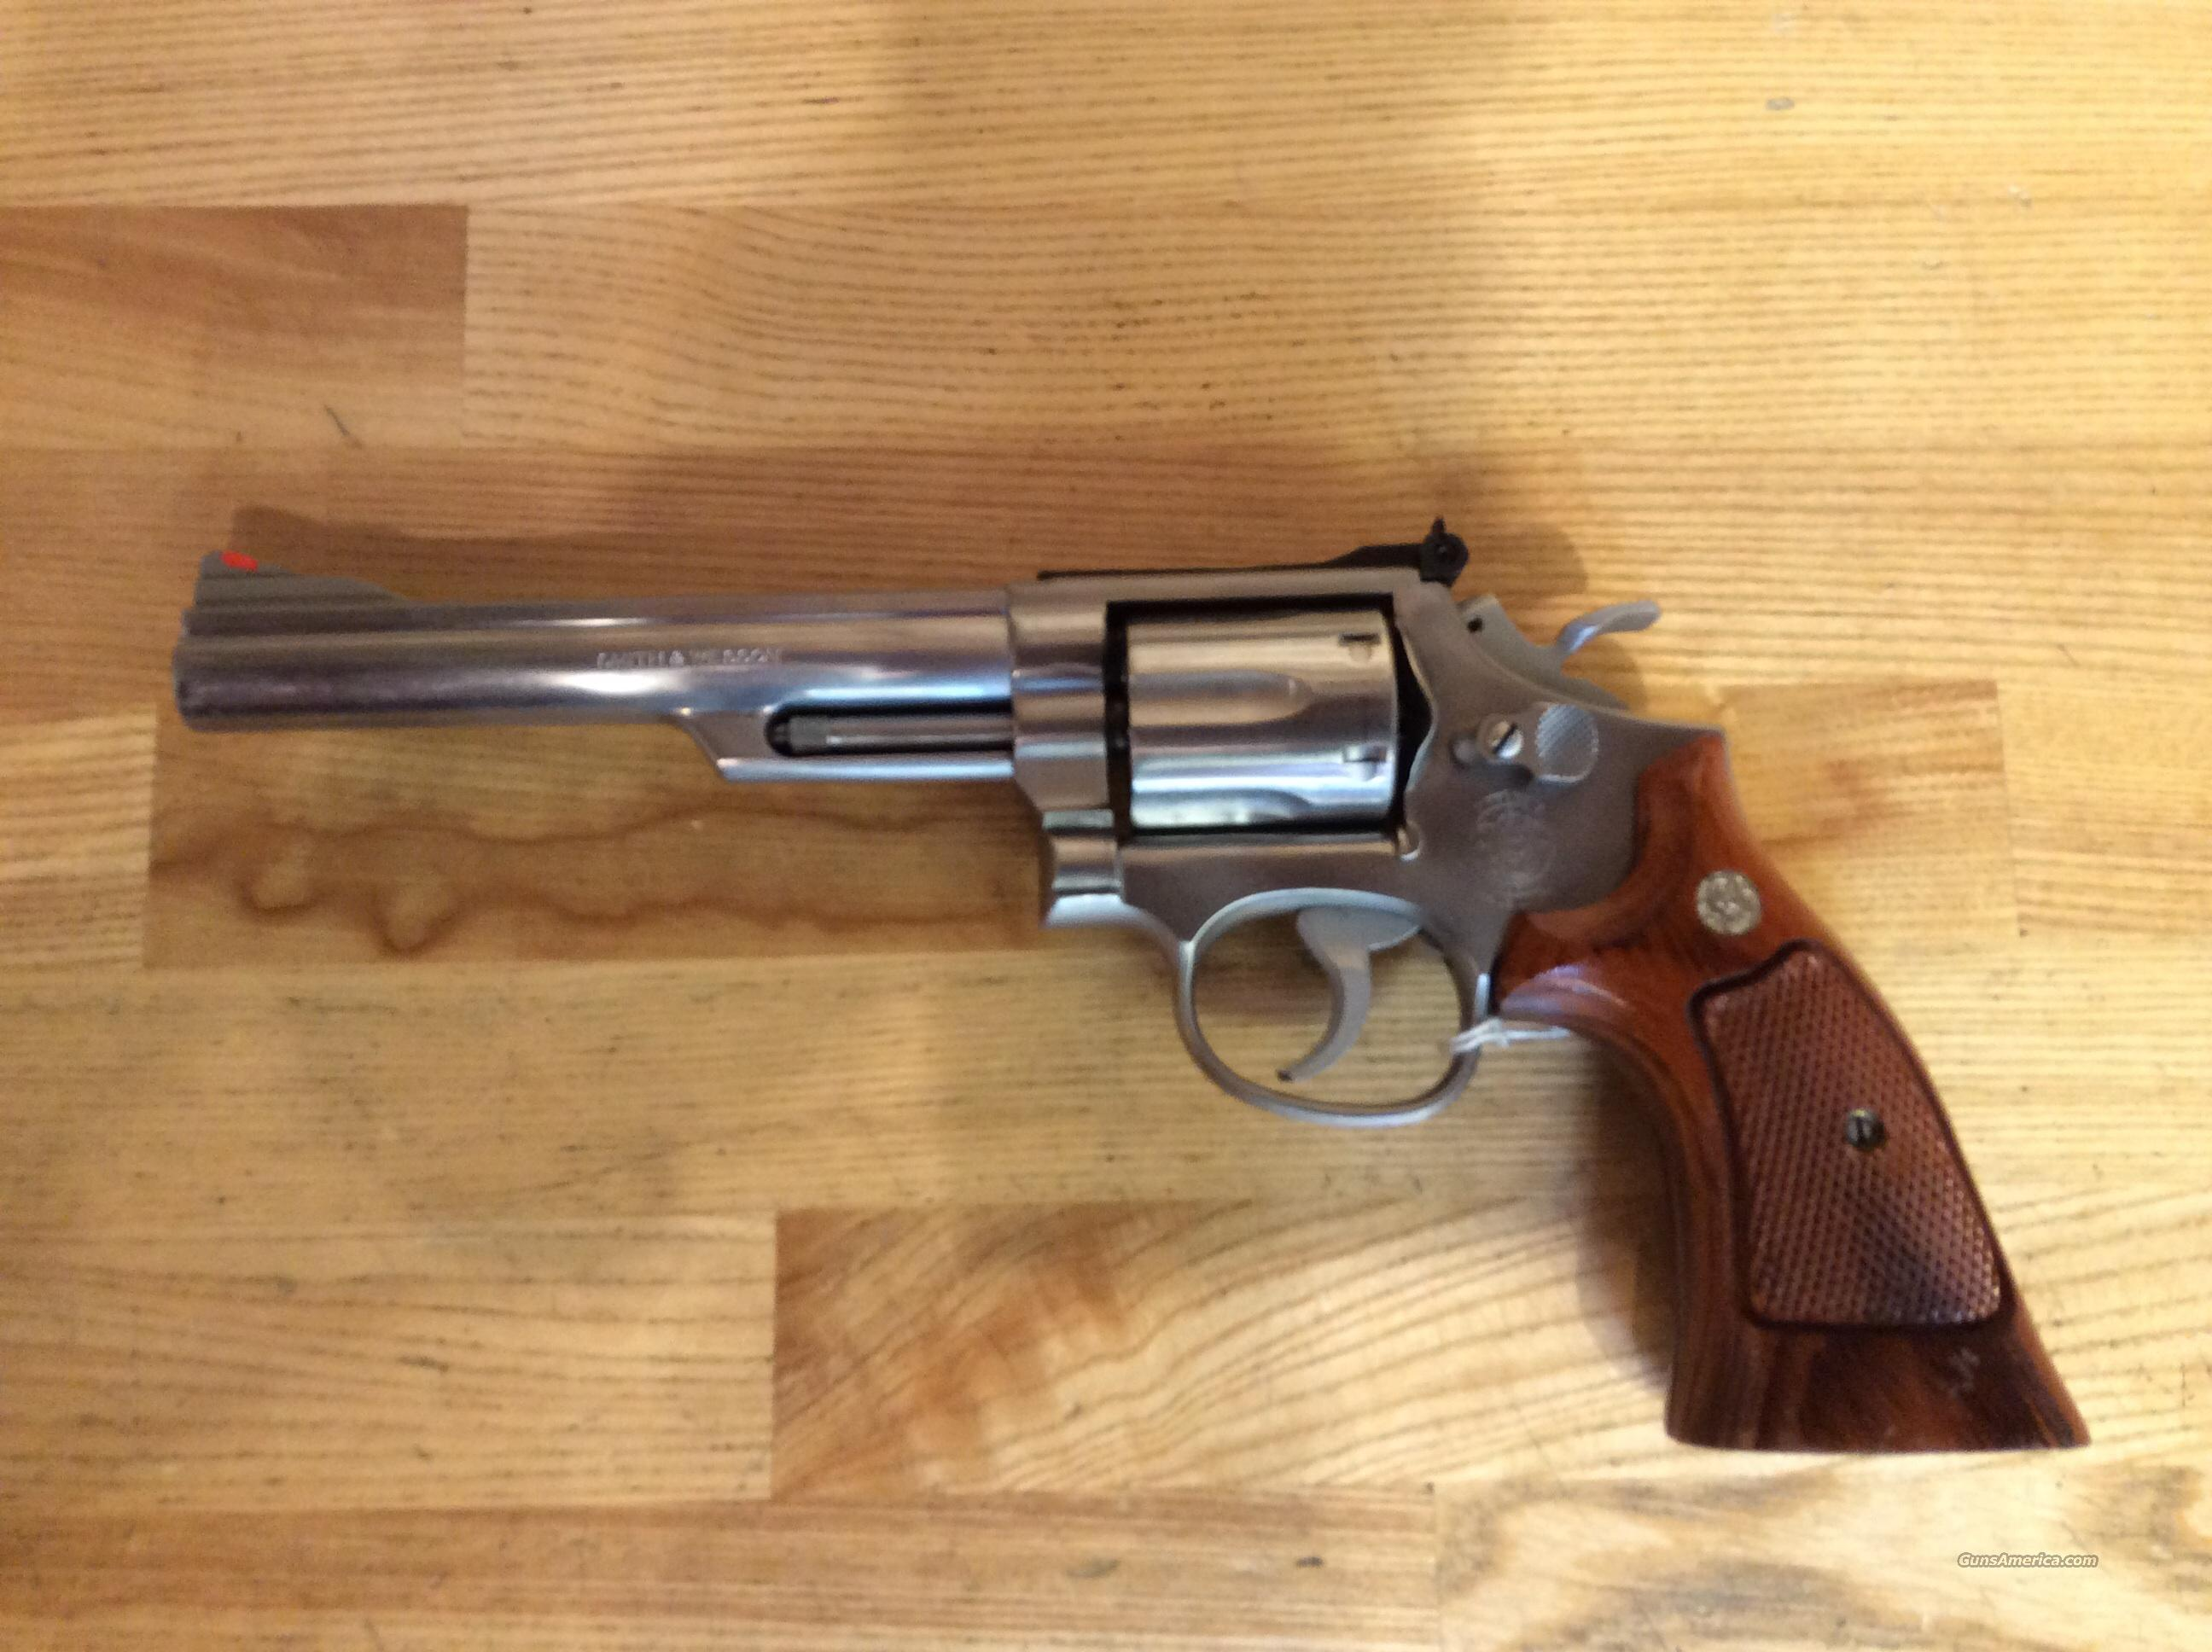 SALE! Smith & Wesson model 66-2 357MAG  Guns > Pistols > Smith & Wesson Revolvers > Full Frame Revolver